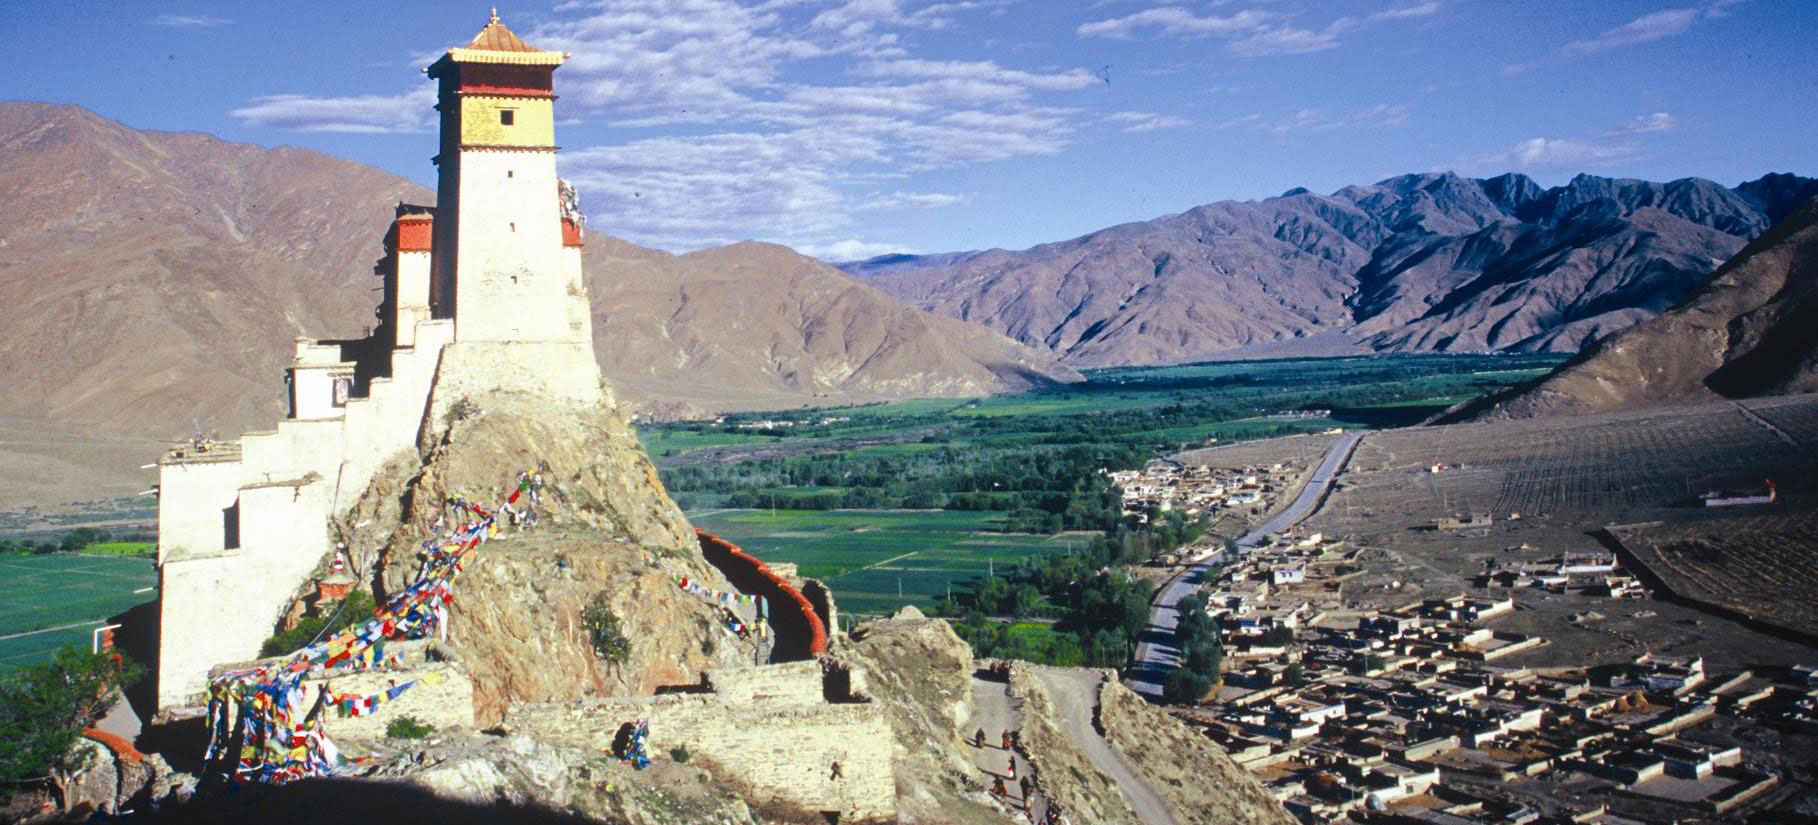 Tibet roof of the  world